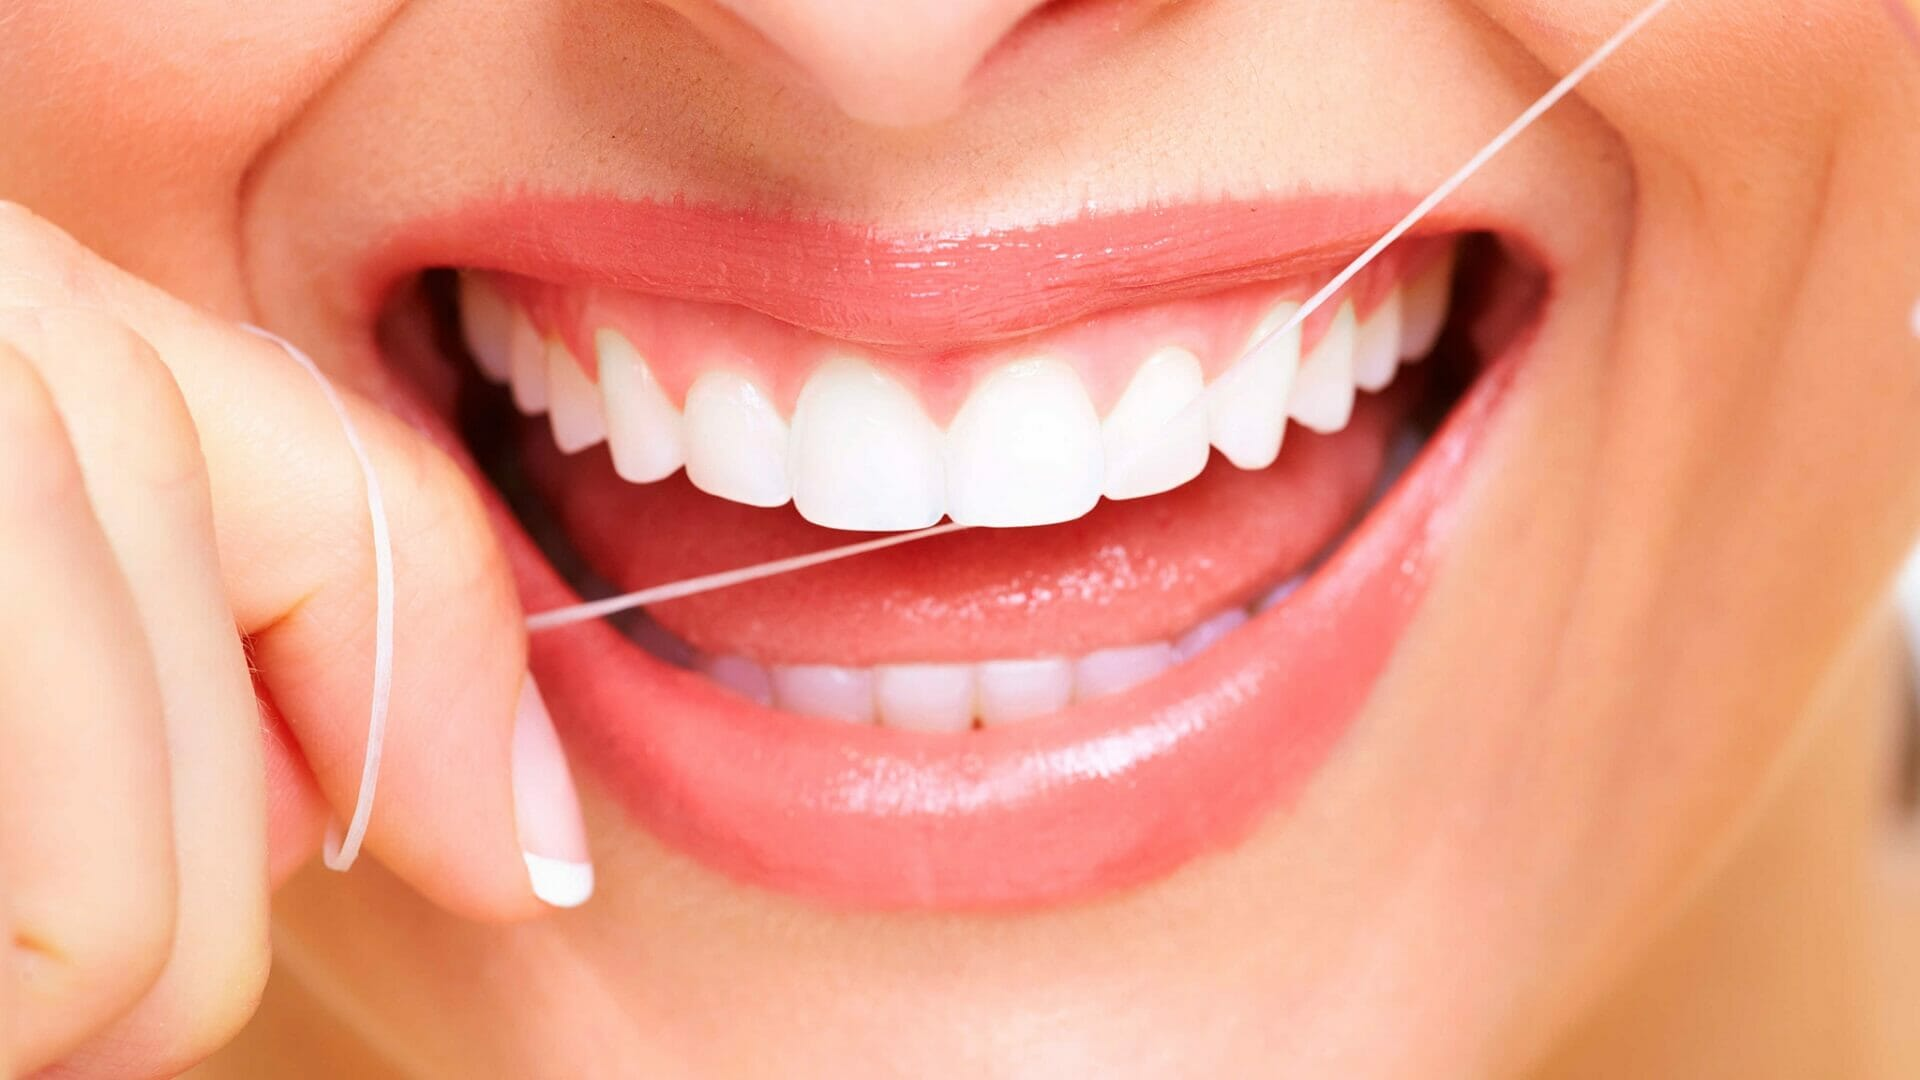 Flossing How Important Is Flossing To You